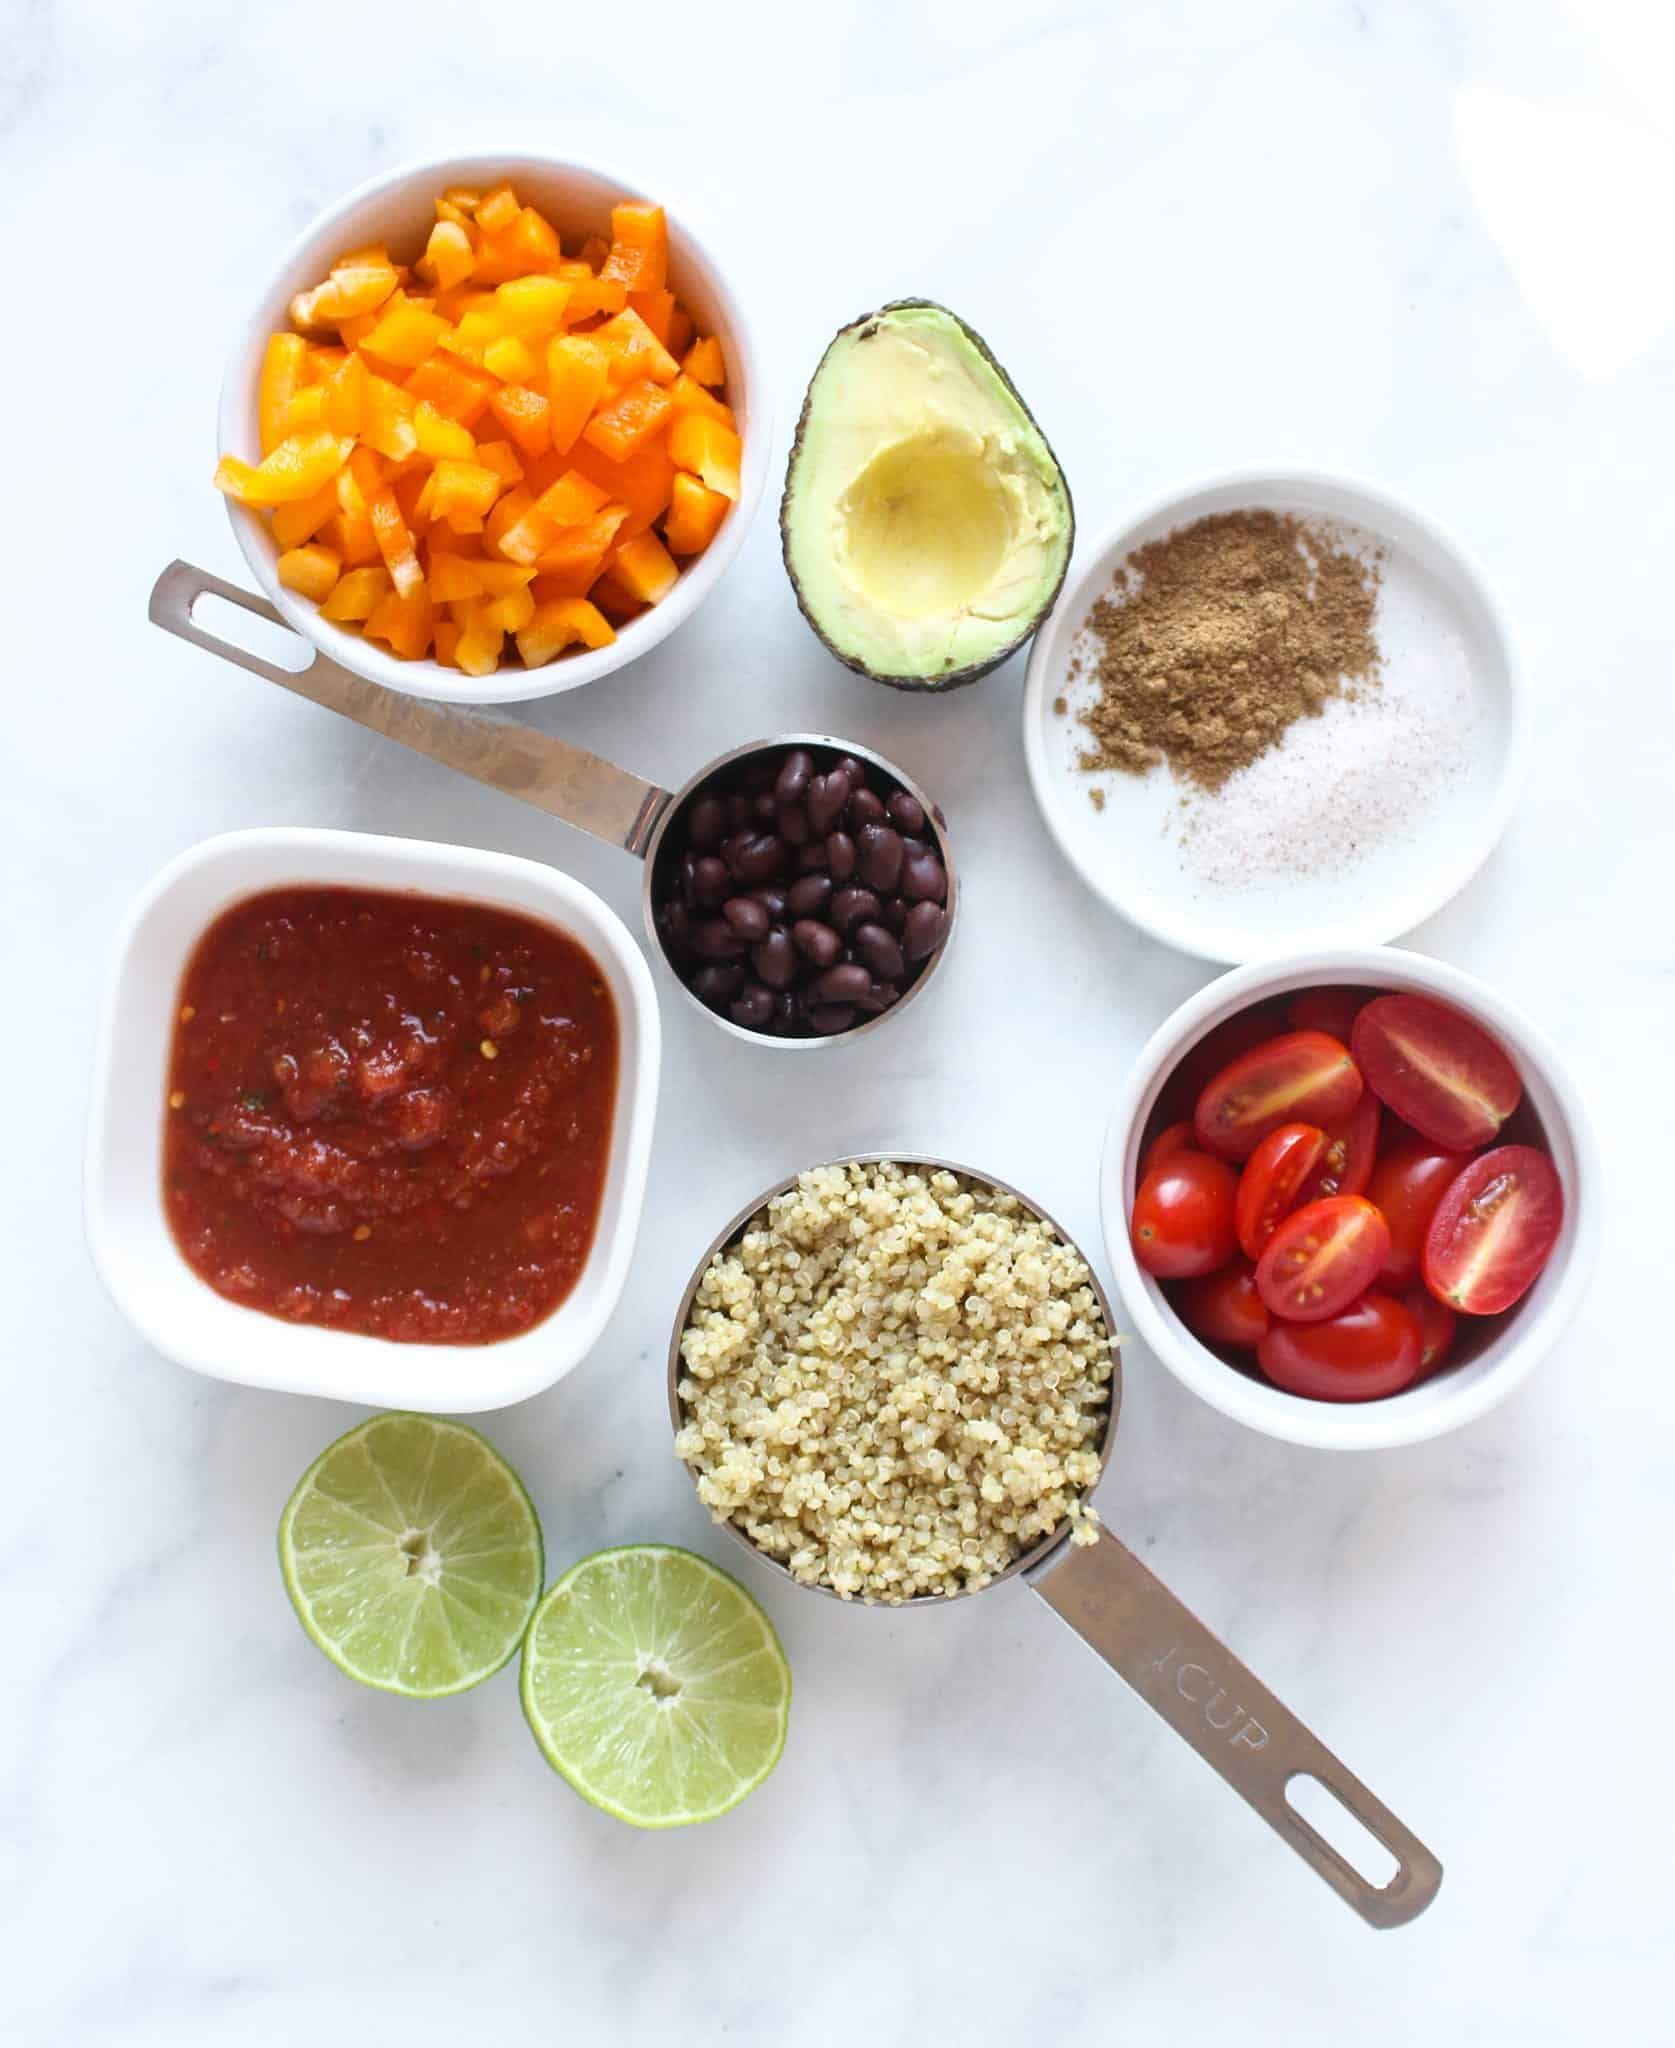 Taco Quinoa Salad #lunch #healthylunch #vegetarian #vegan #glutenfree #dairyfree